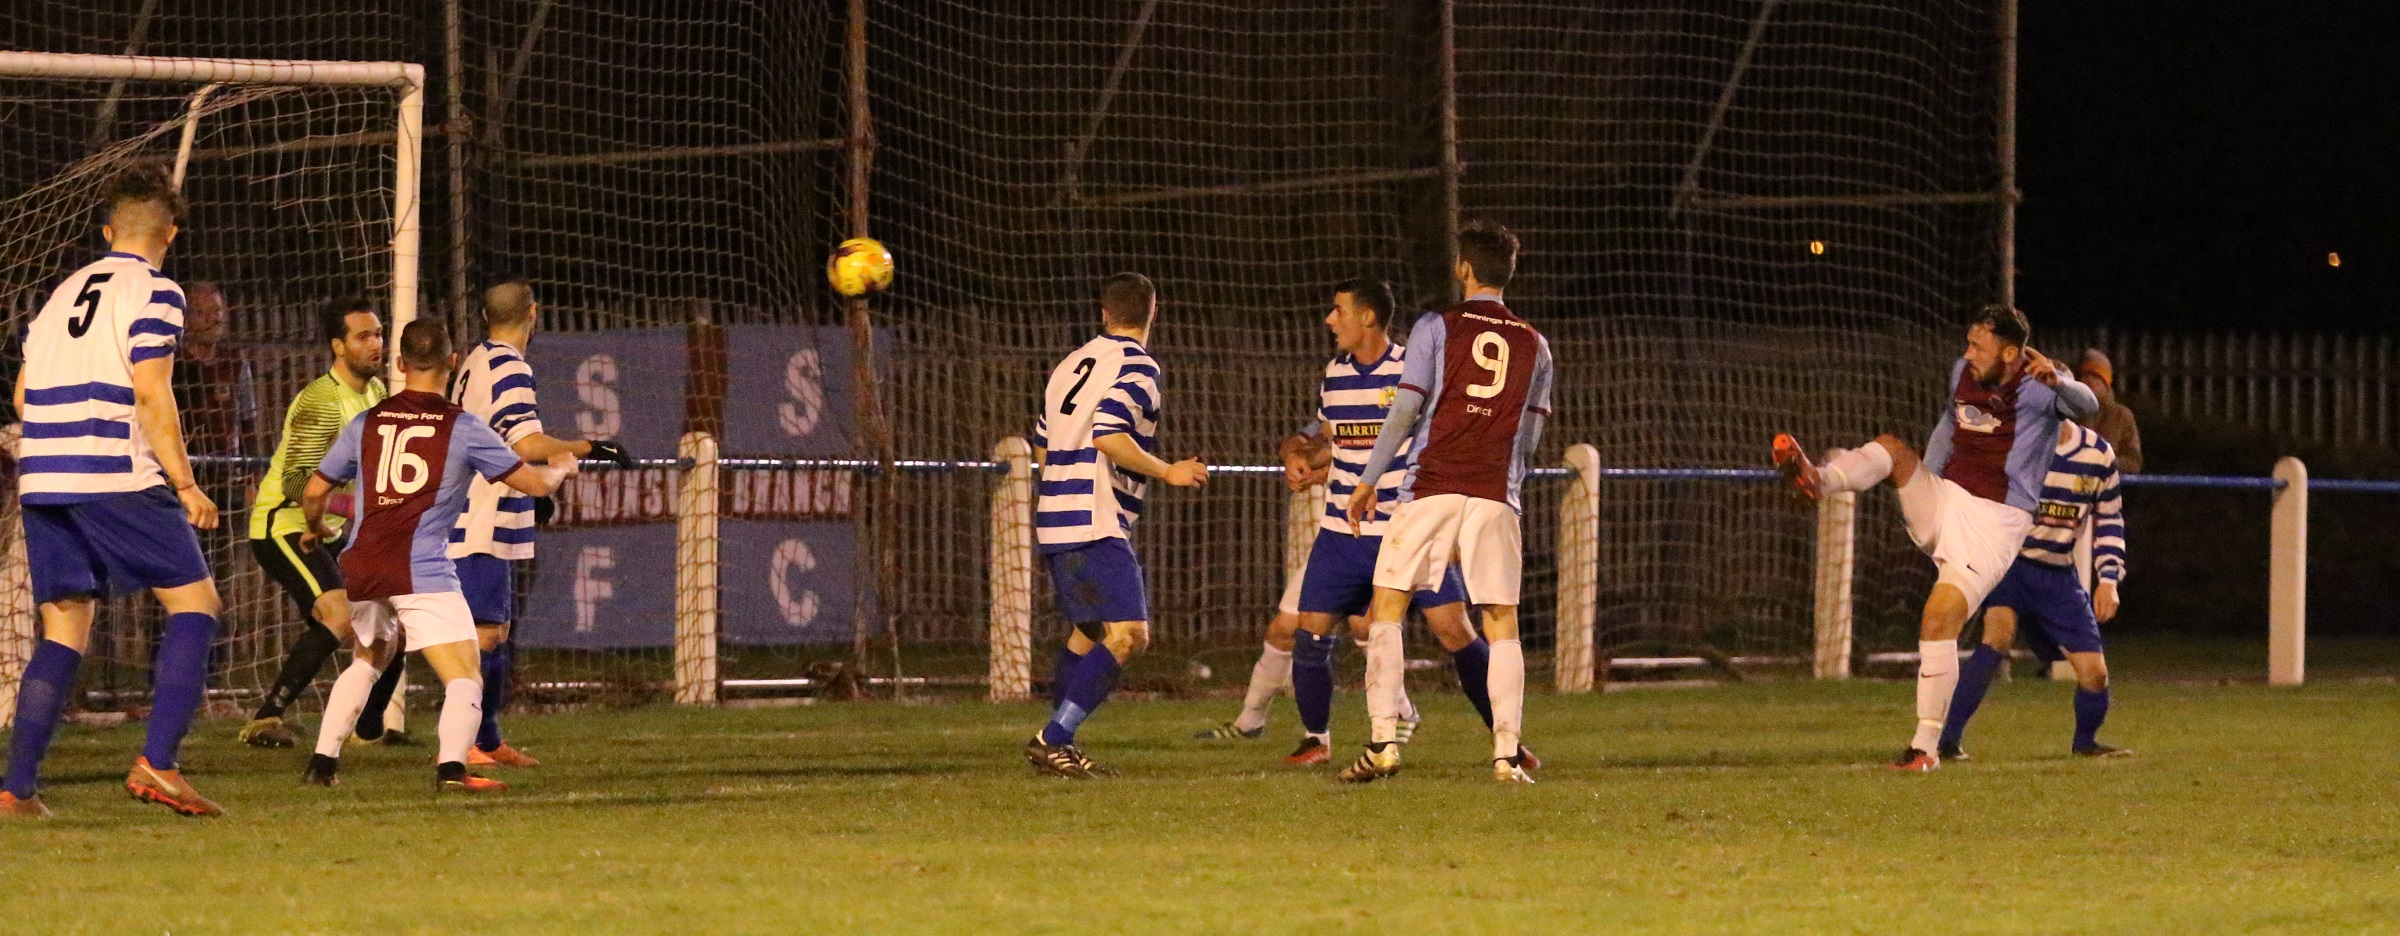 Newcastle Benfield vs South Shields